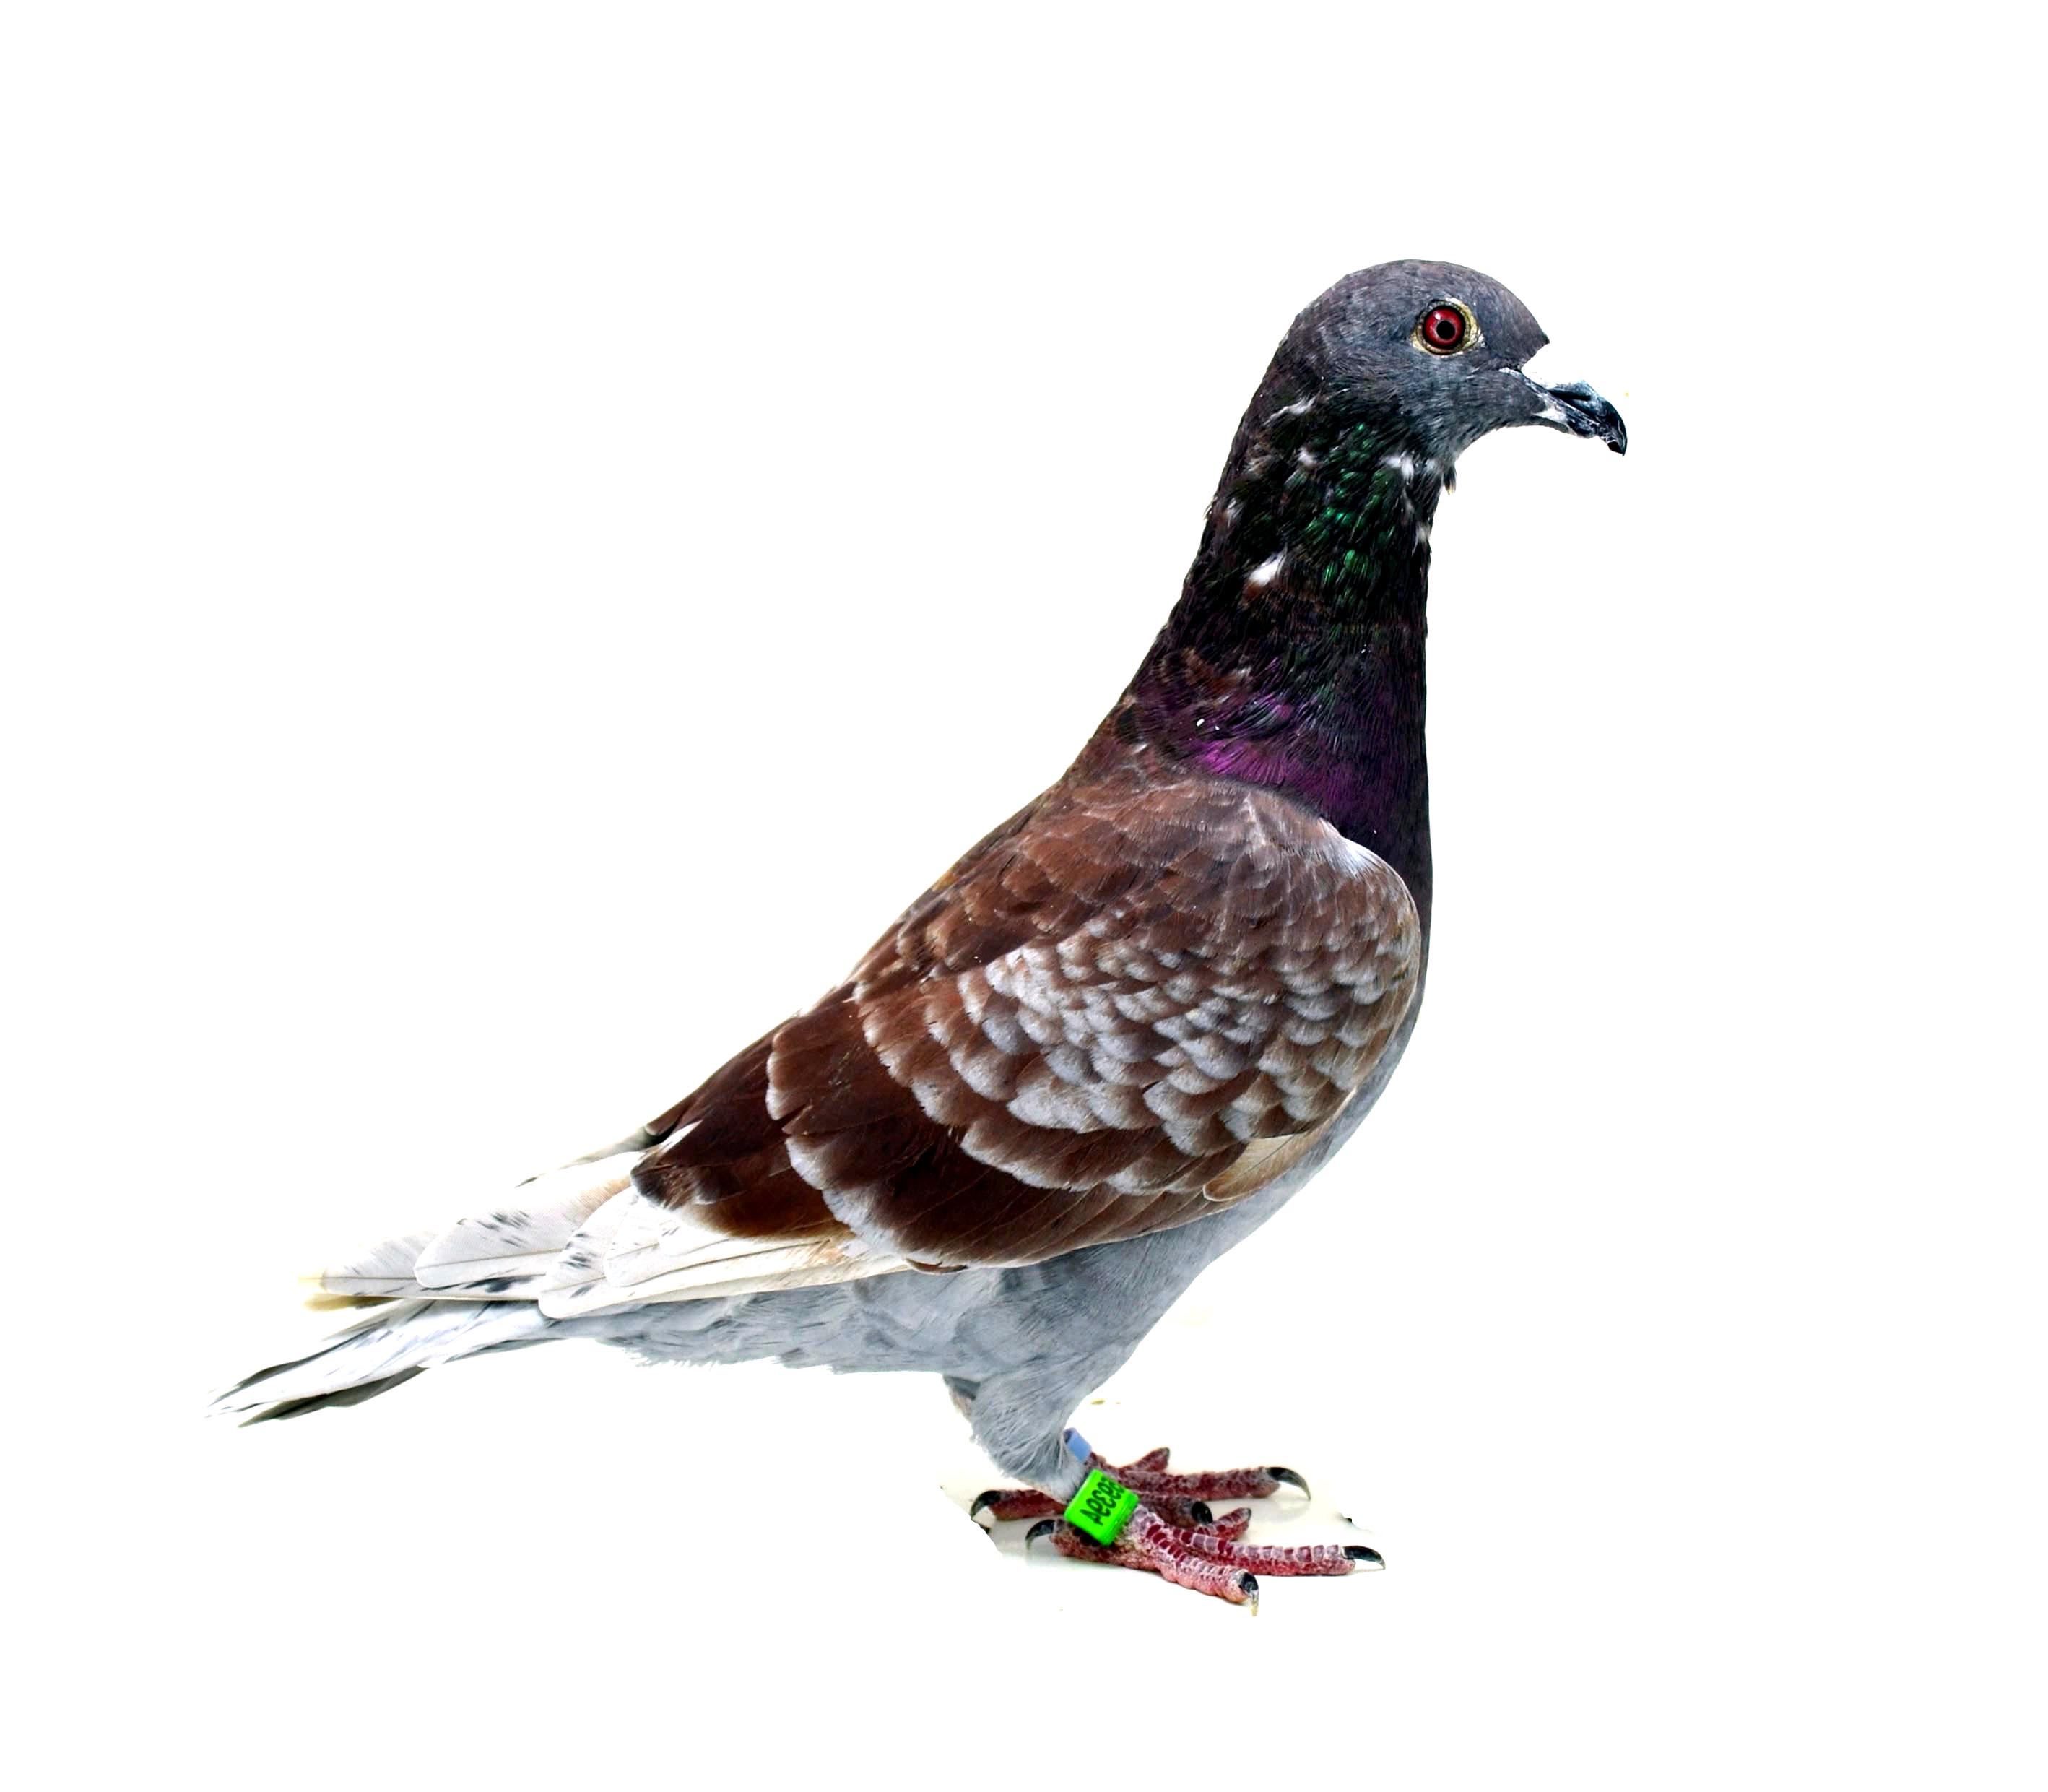 84 FINAL RACE SPORTING PIGEONS TEAMTeam APortugalPT-8459394-2018